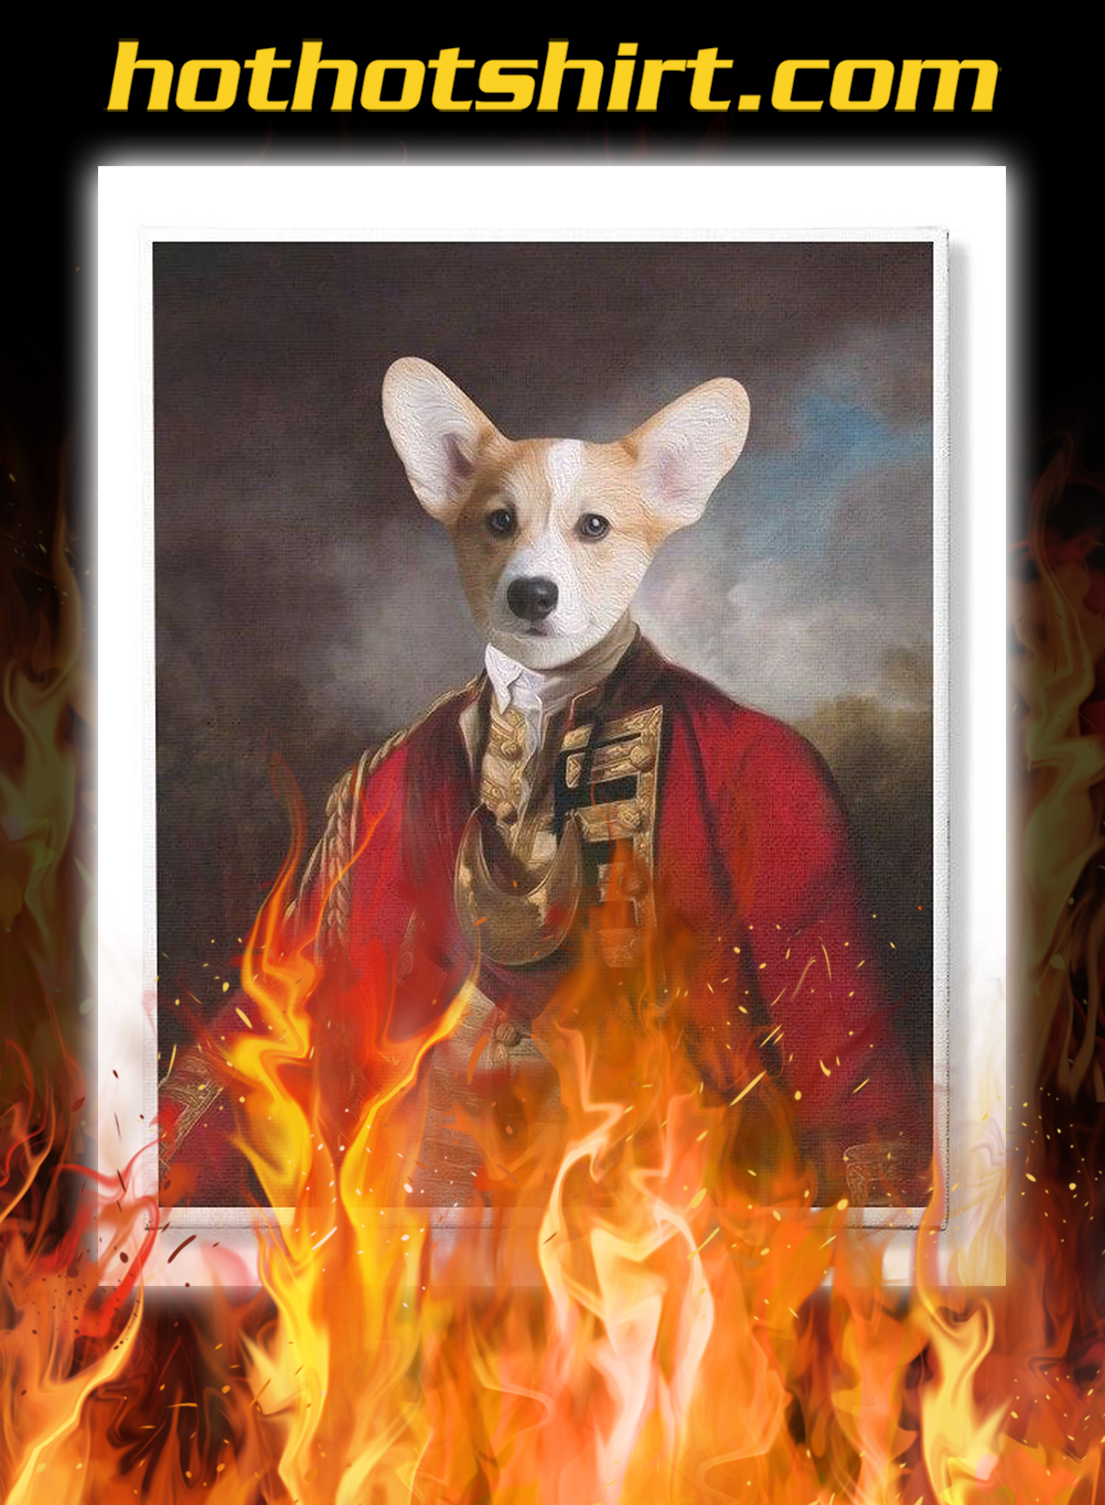 Dog king custom personalized vertical canvas prints- pic 1